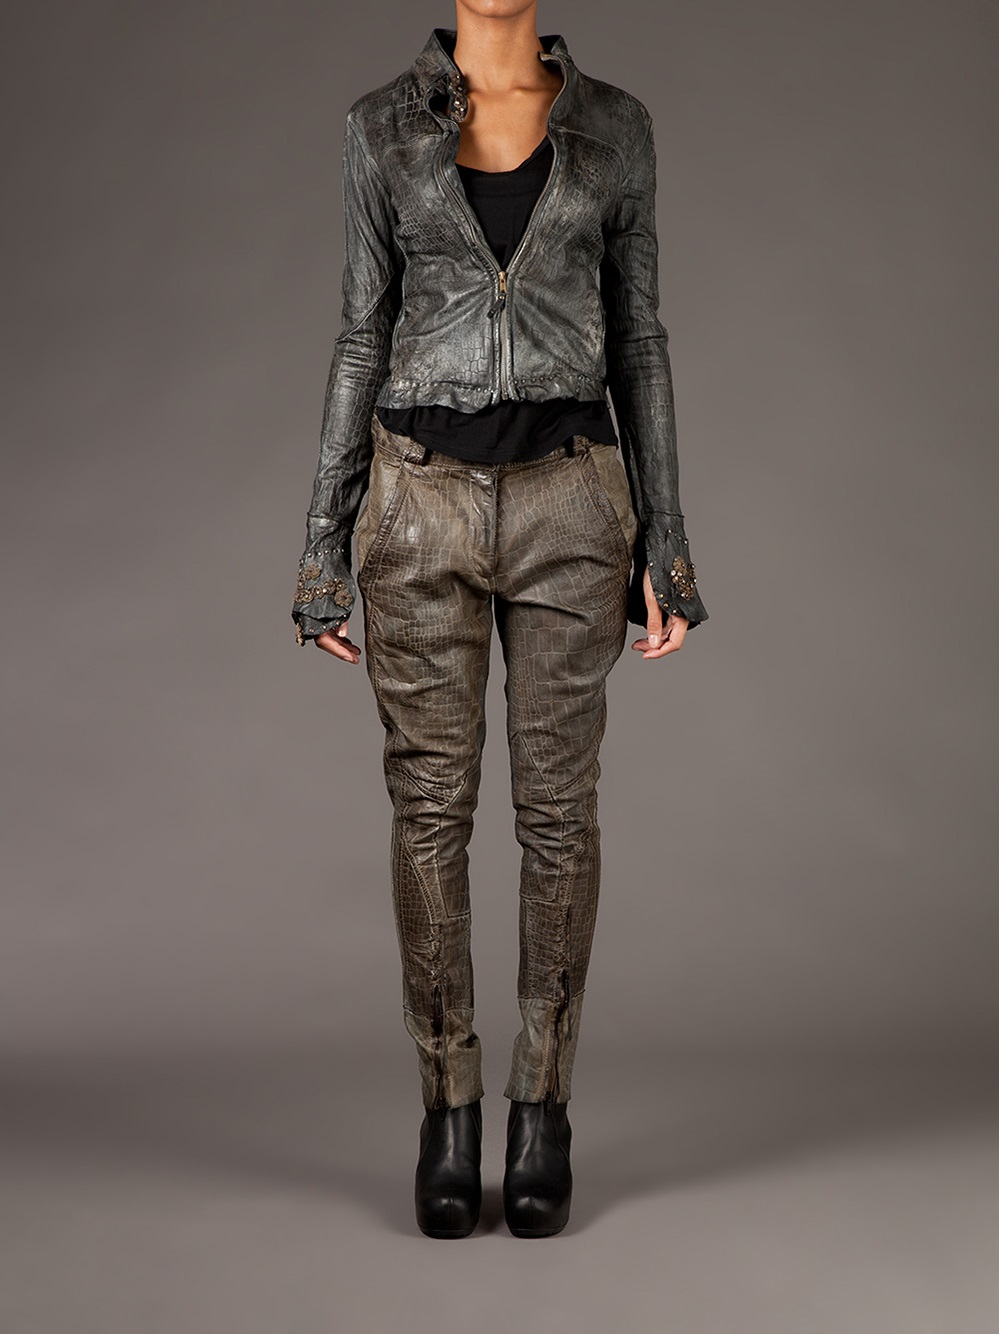 Lyst Le Cuir Perdu Used Effect Leather Jacket In Gray